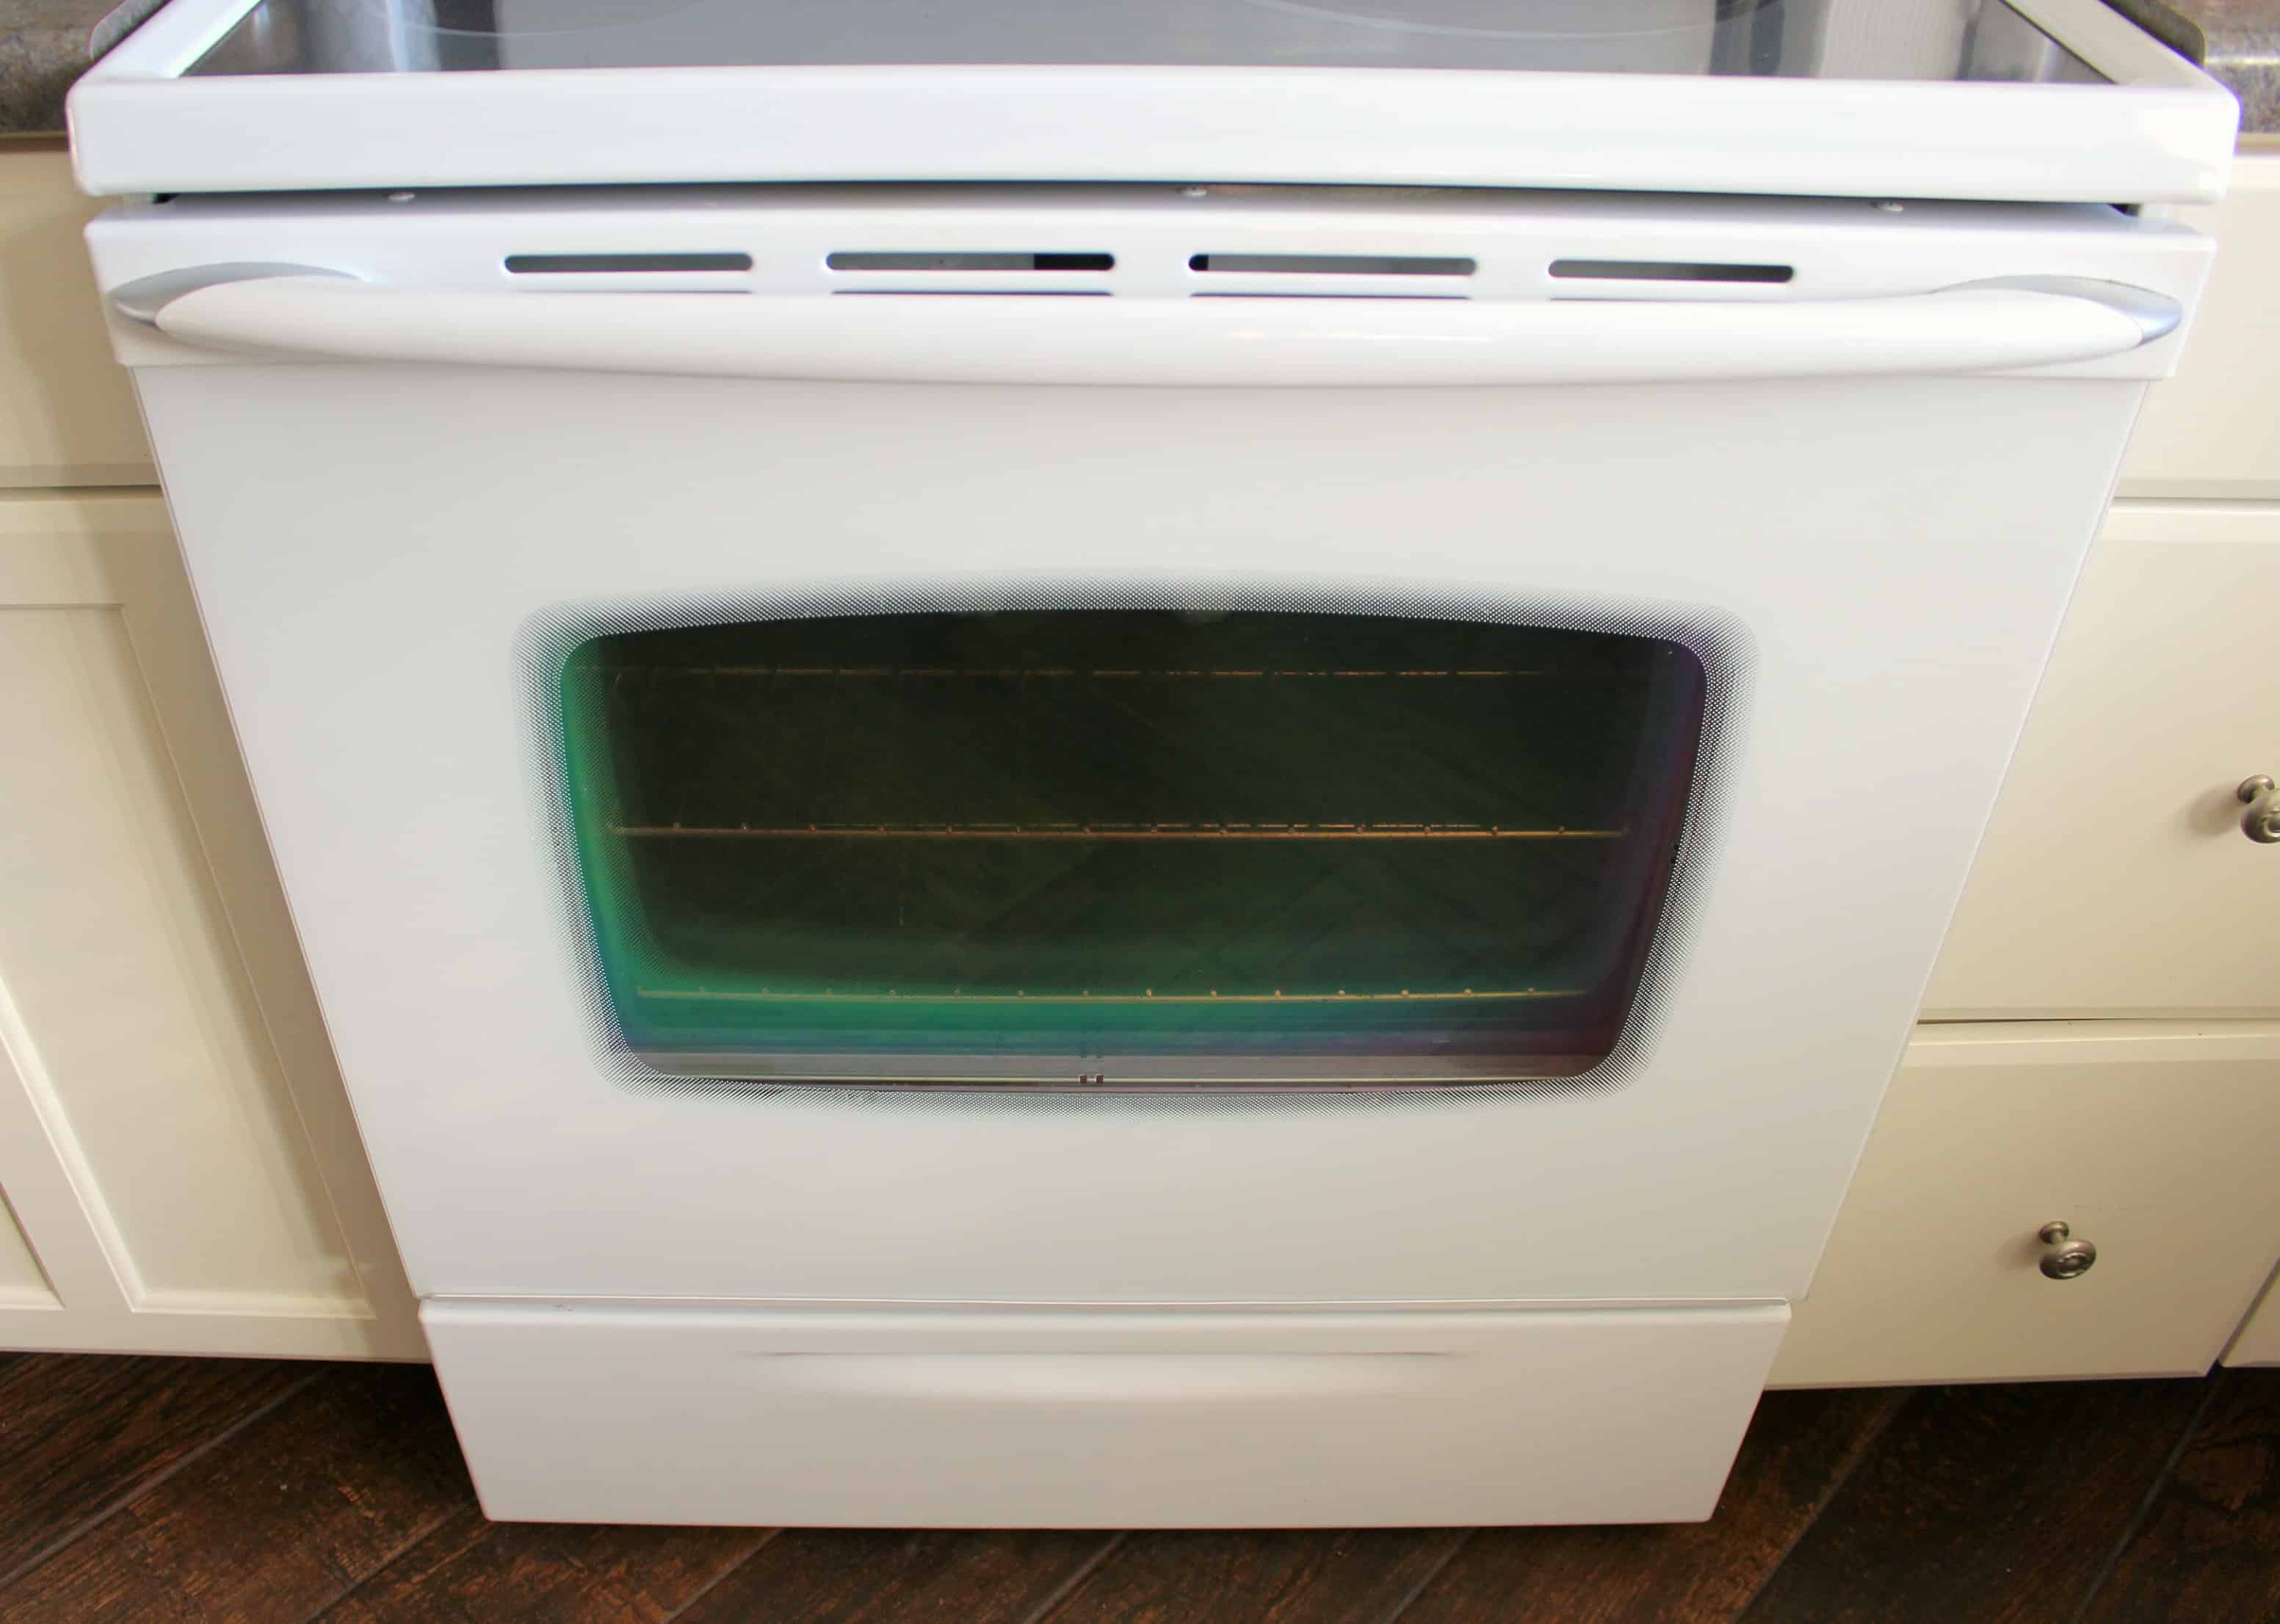 How To Clean Between The Glass Door Of Your Maytag Oven The